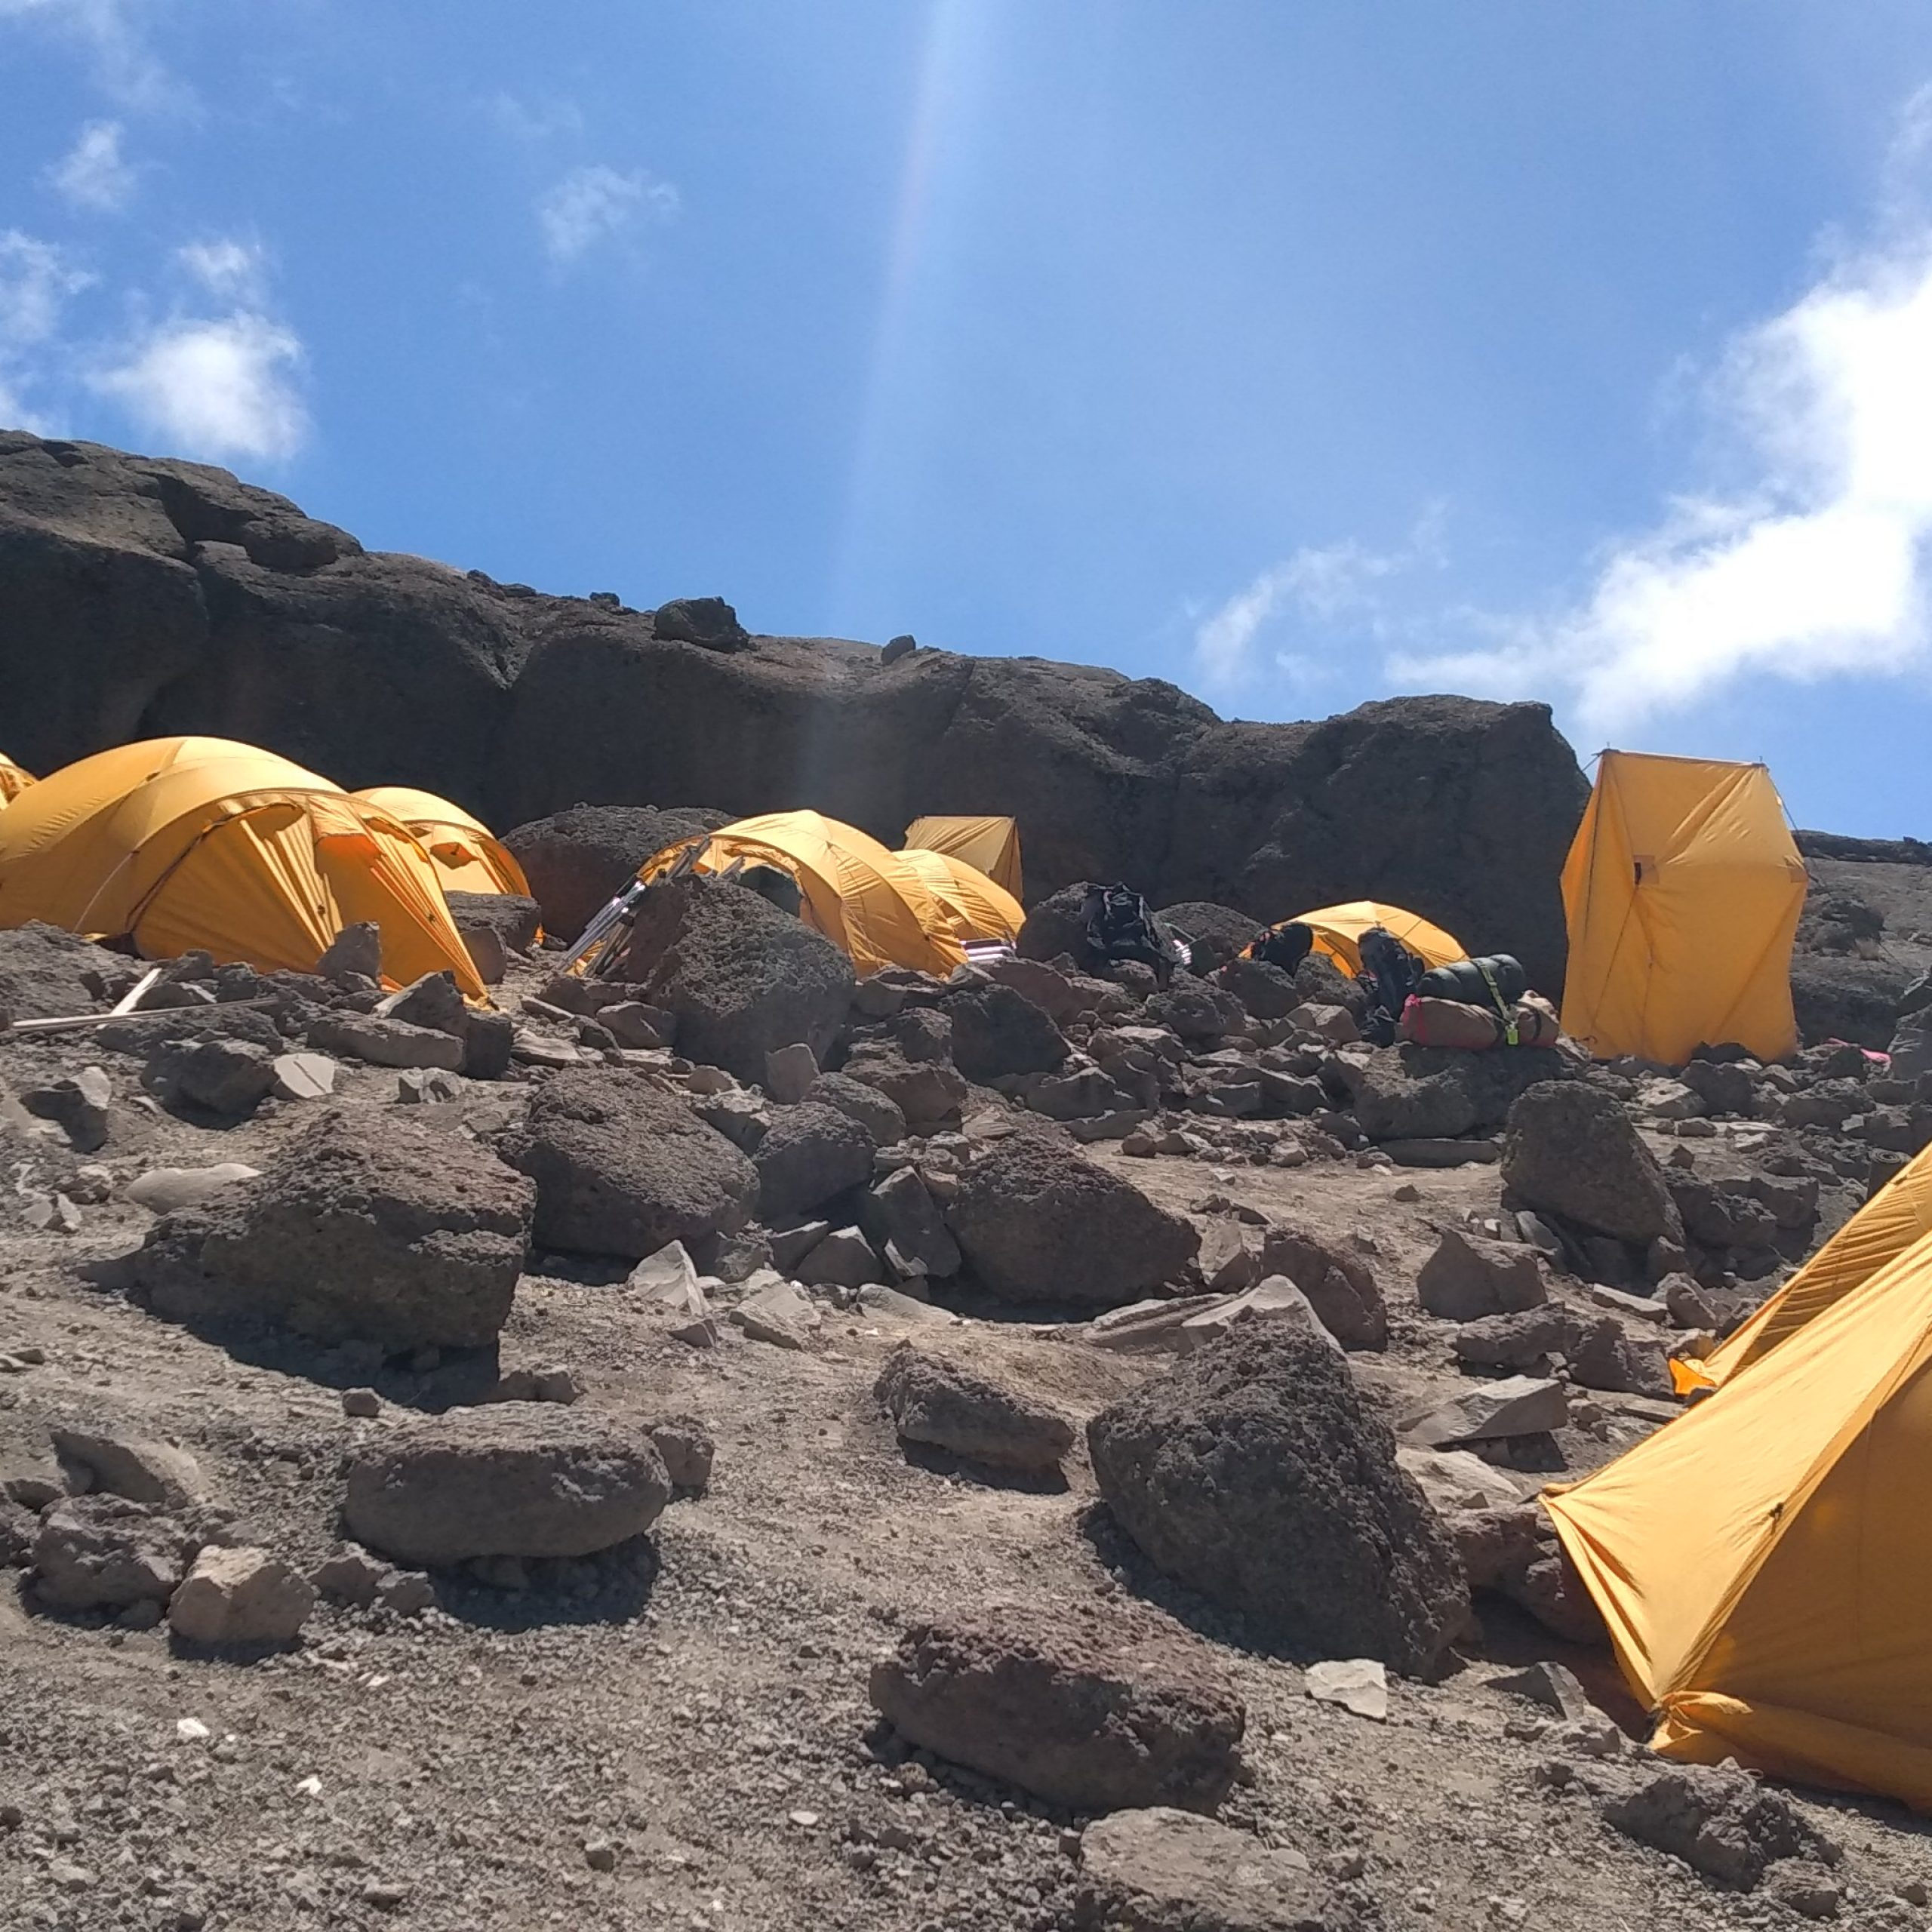 Day Six– Barafu Camp (4,550 m/14,930 ft) – Summit via Stella Point (5,752 m/18,871 ft) to Uhuru Peak (5,895 m/19,340 ft) and descent to Millennium Camp (3,820 m/12,530 ft) or to Mweka Camp (3,100 m/10,170 ft)